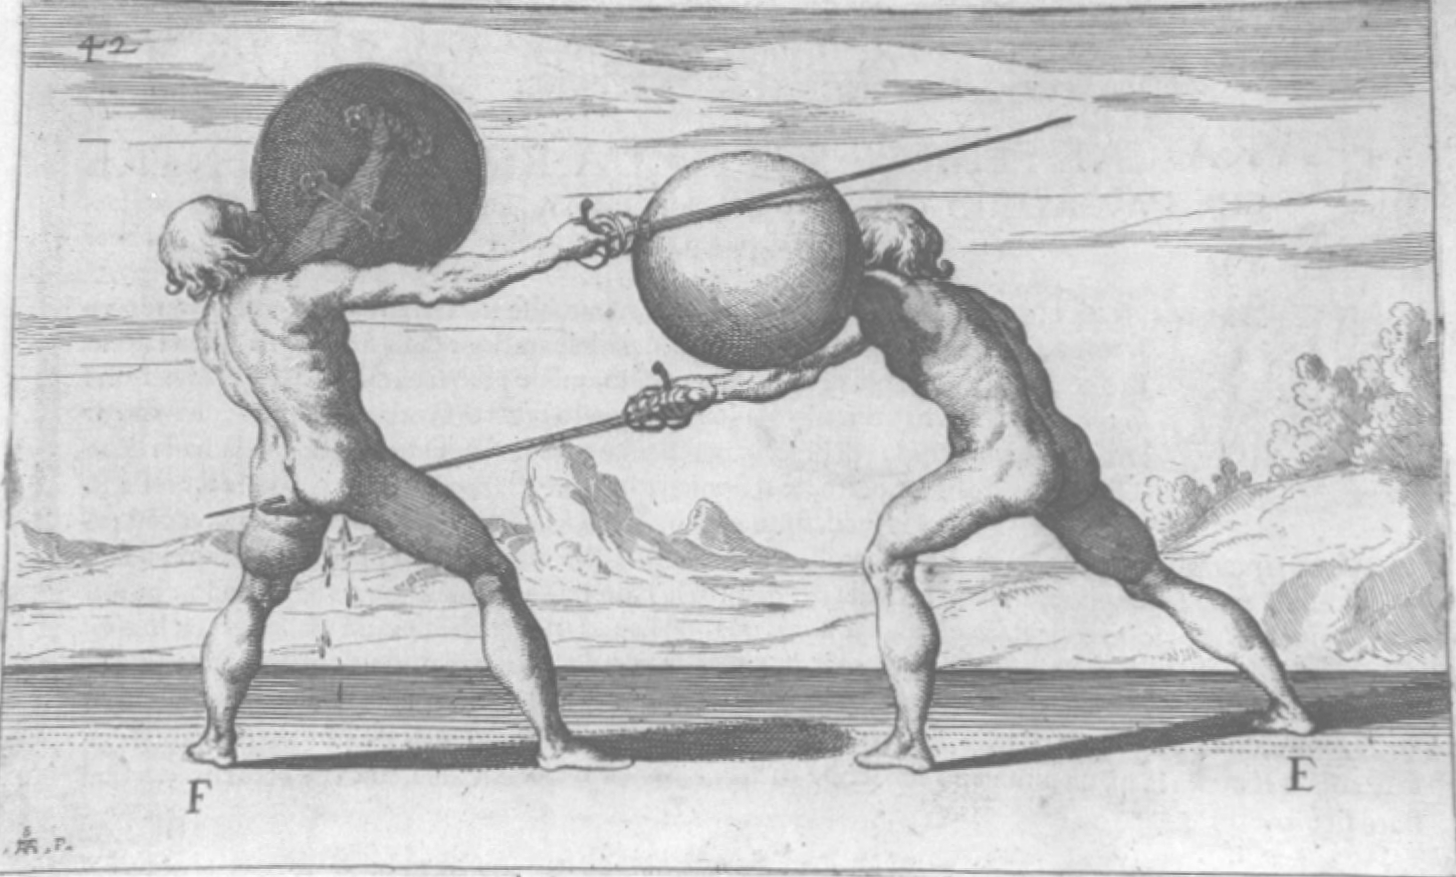 A photo of two naked fencers with round strapped shields and long thrusting swords.